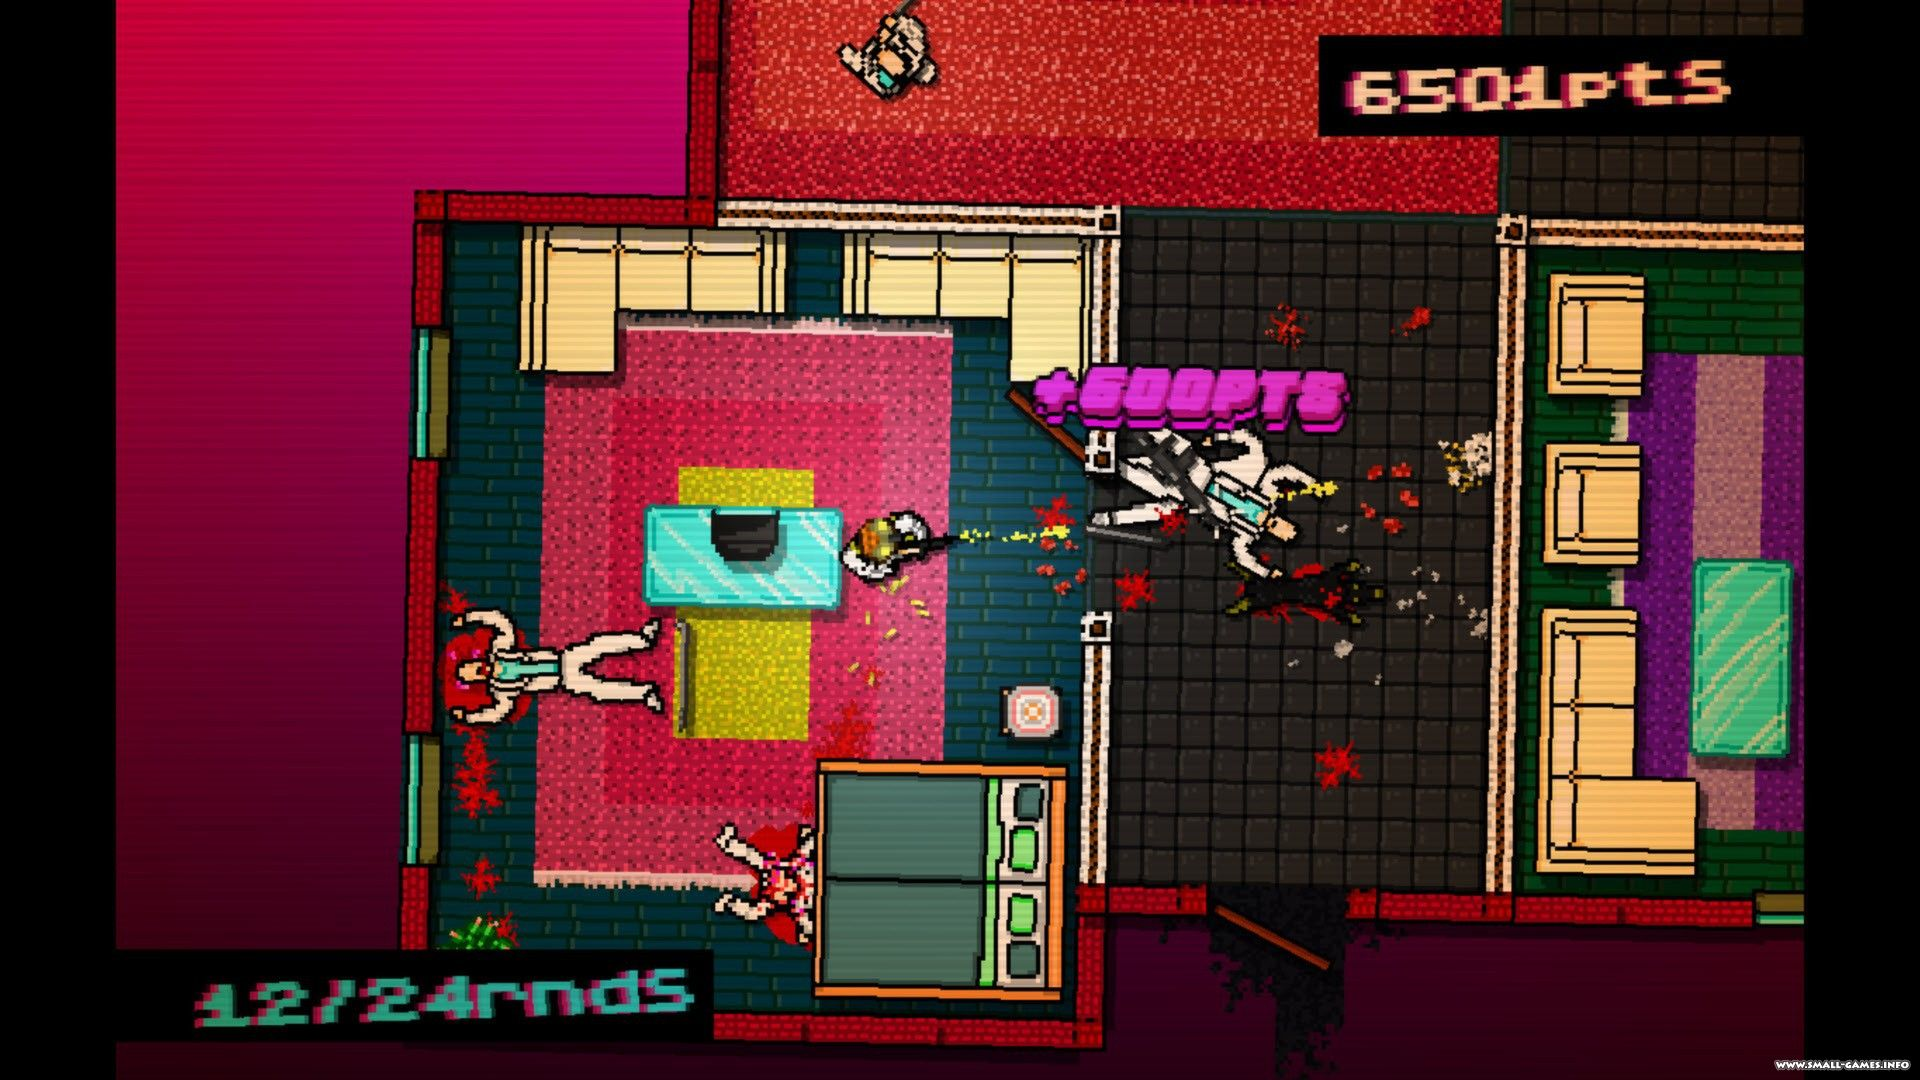 Hotline miami скачать торрент репак на русском языке хотлайн майами.